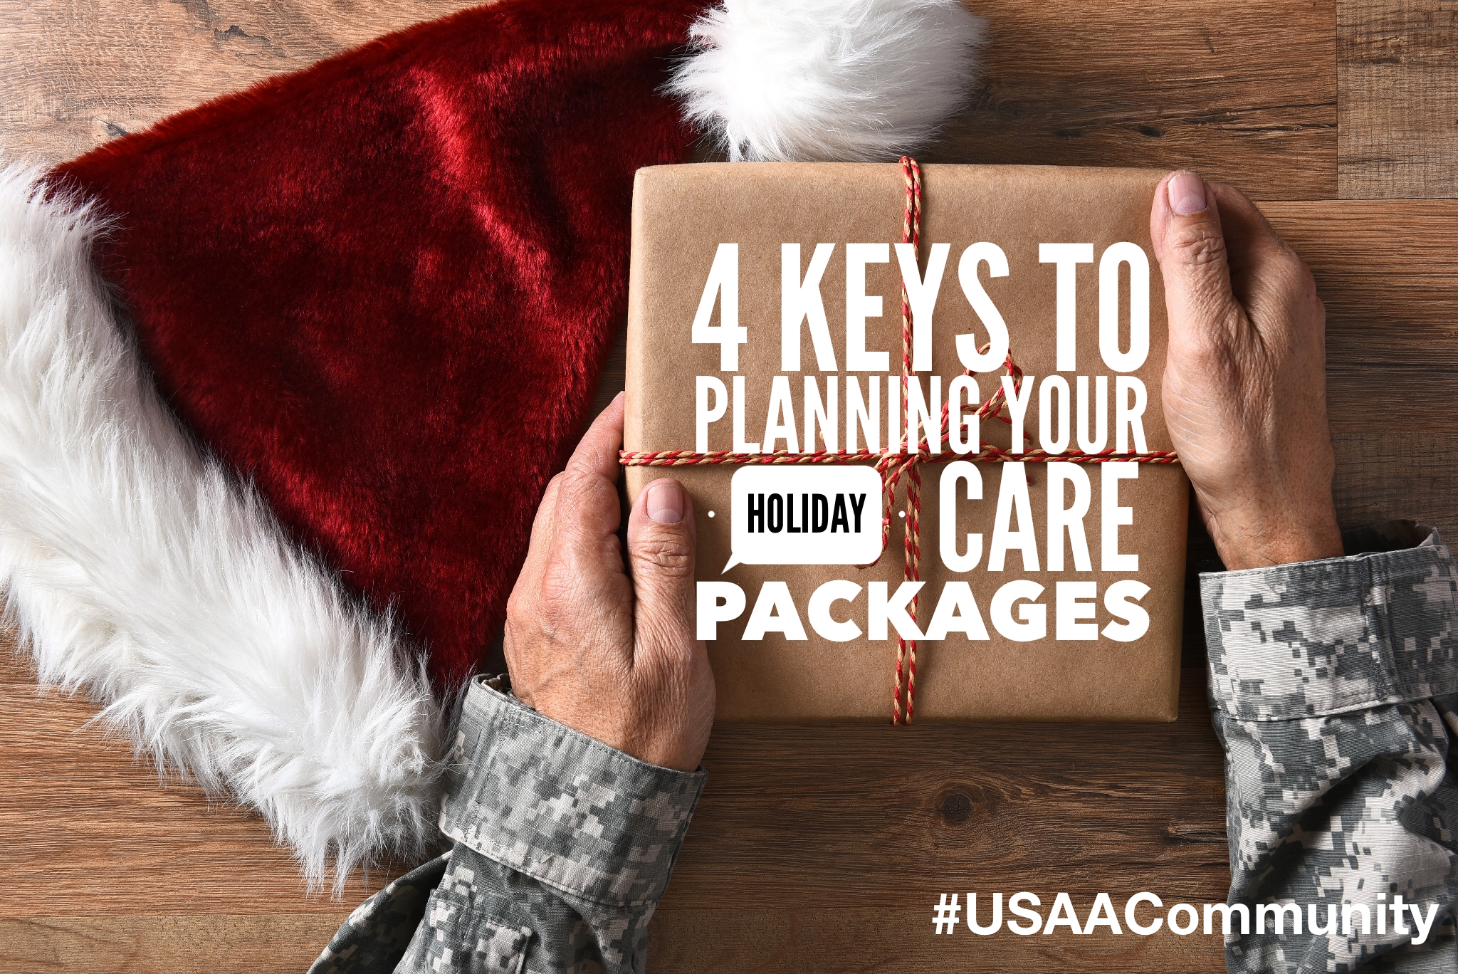 USAA-Member-Community-Keys-to-Holiday-Care_Packagessmall.png